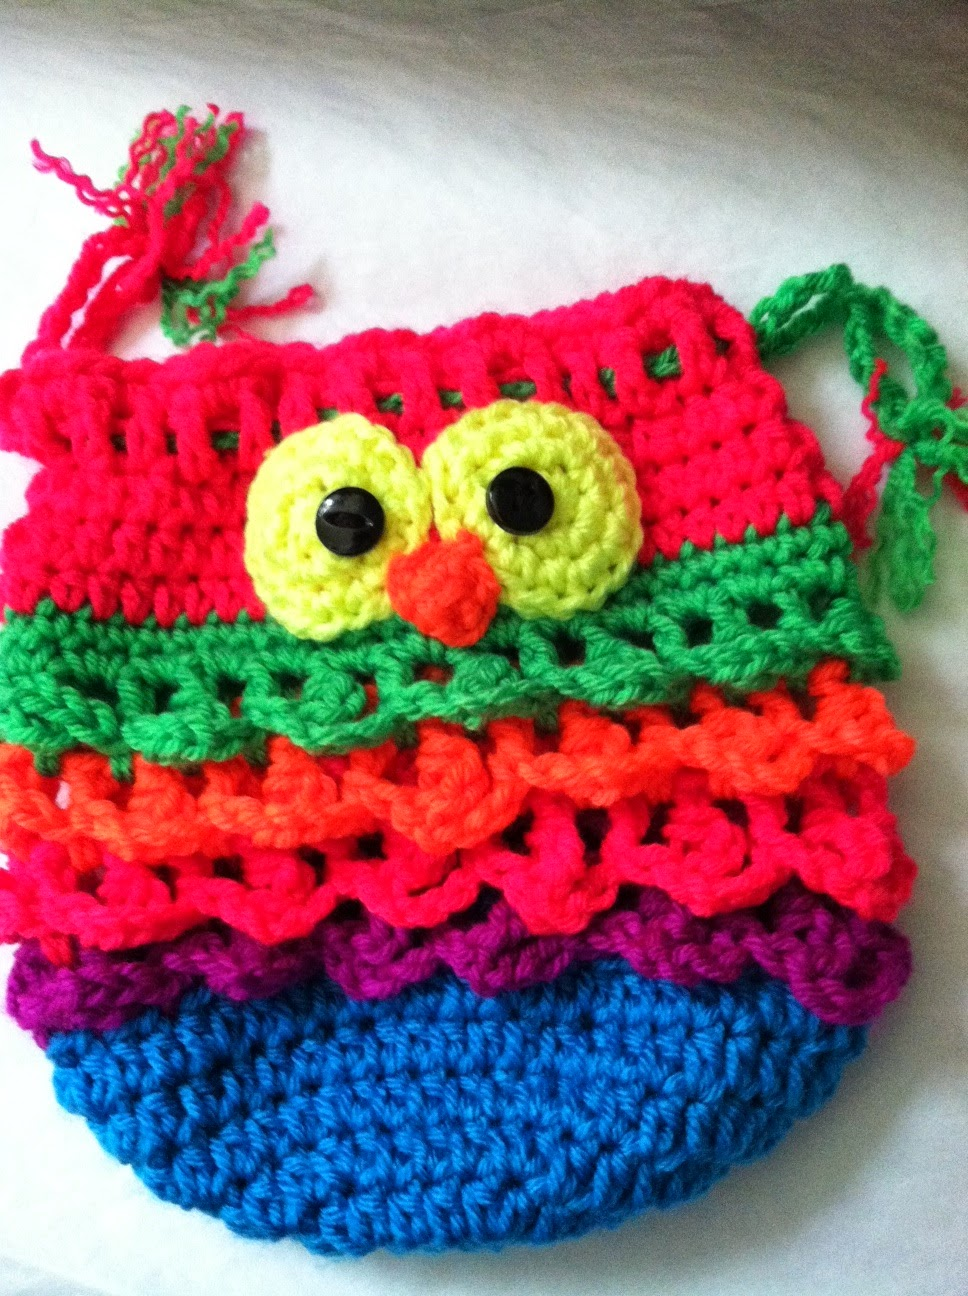 Lakeview Cottage Kids: So Cute! Crochet Owl Purse! Pattern by Snappy ...